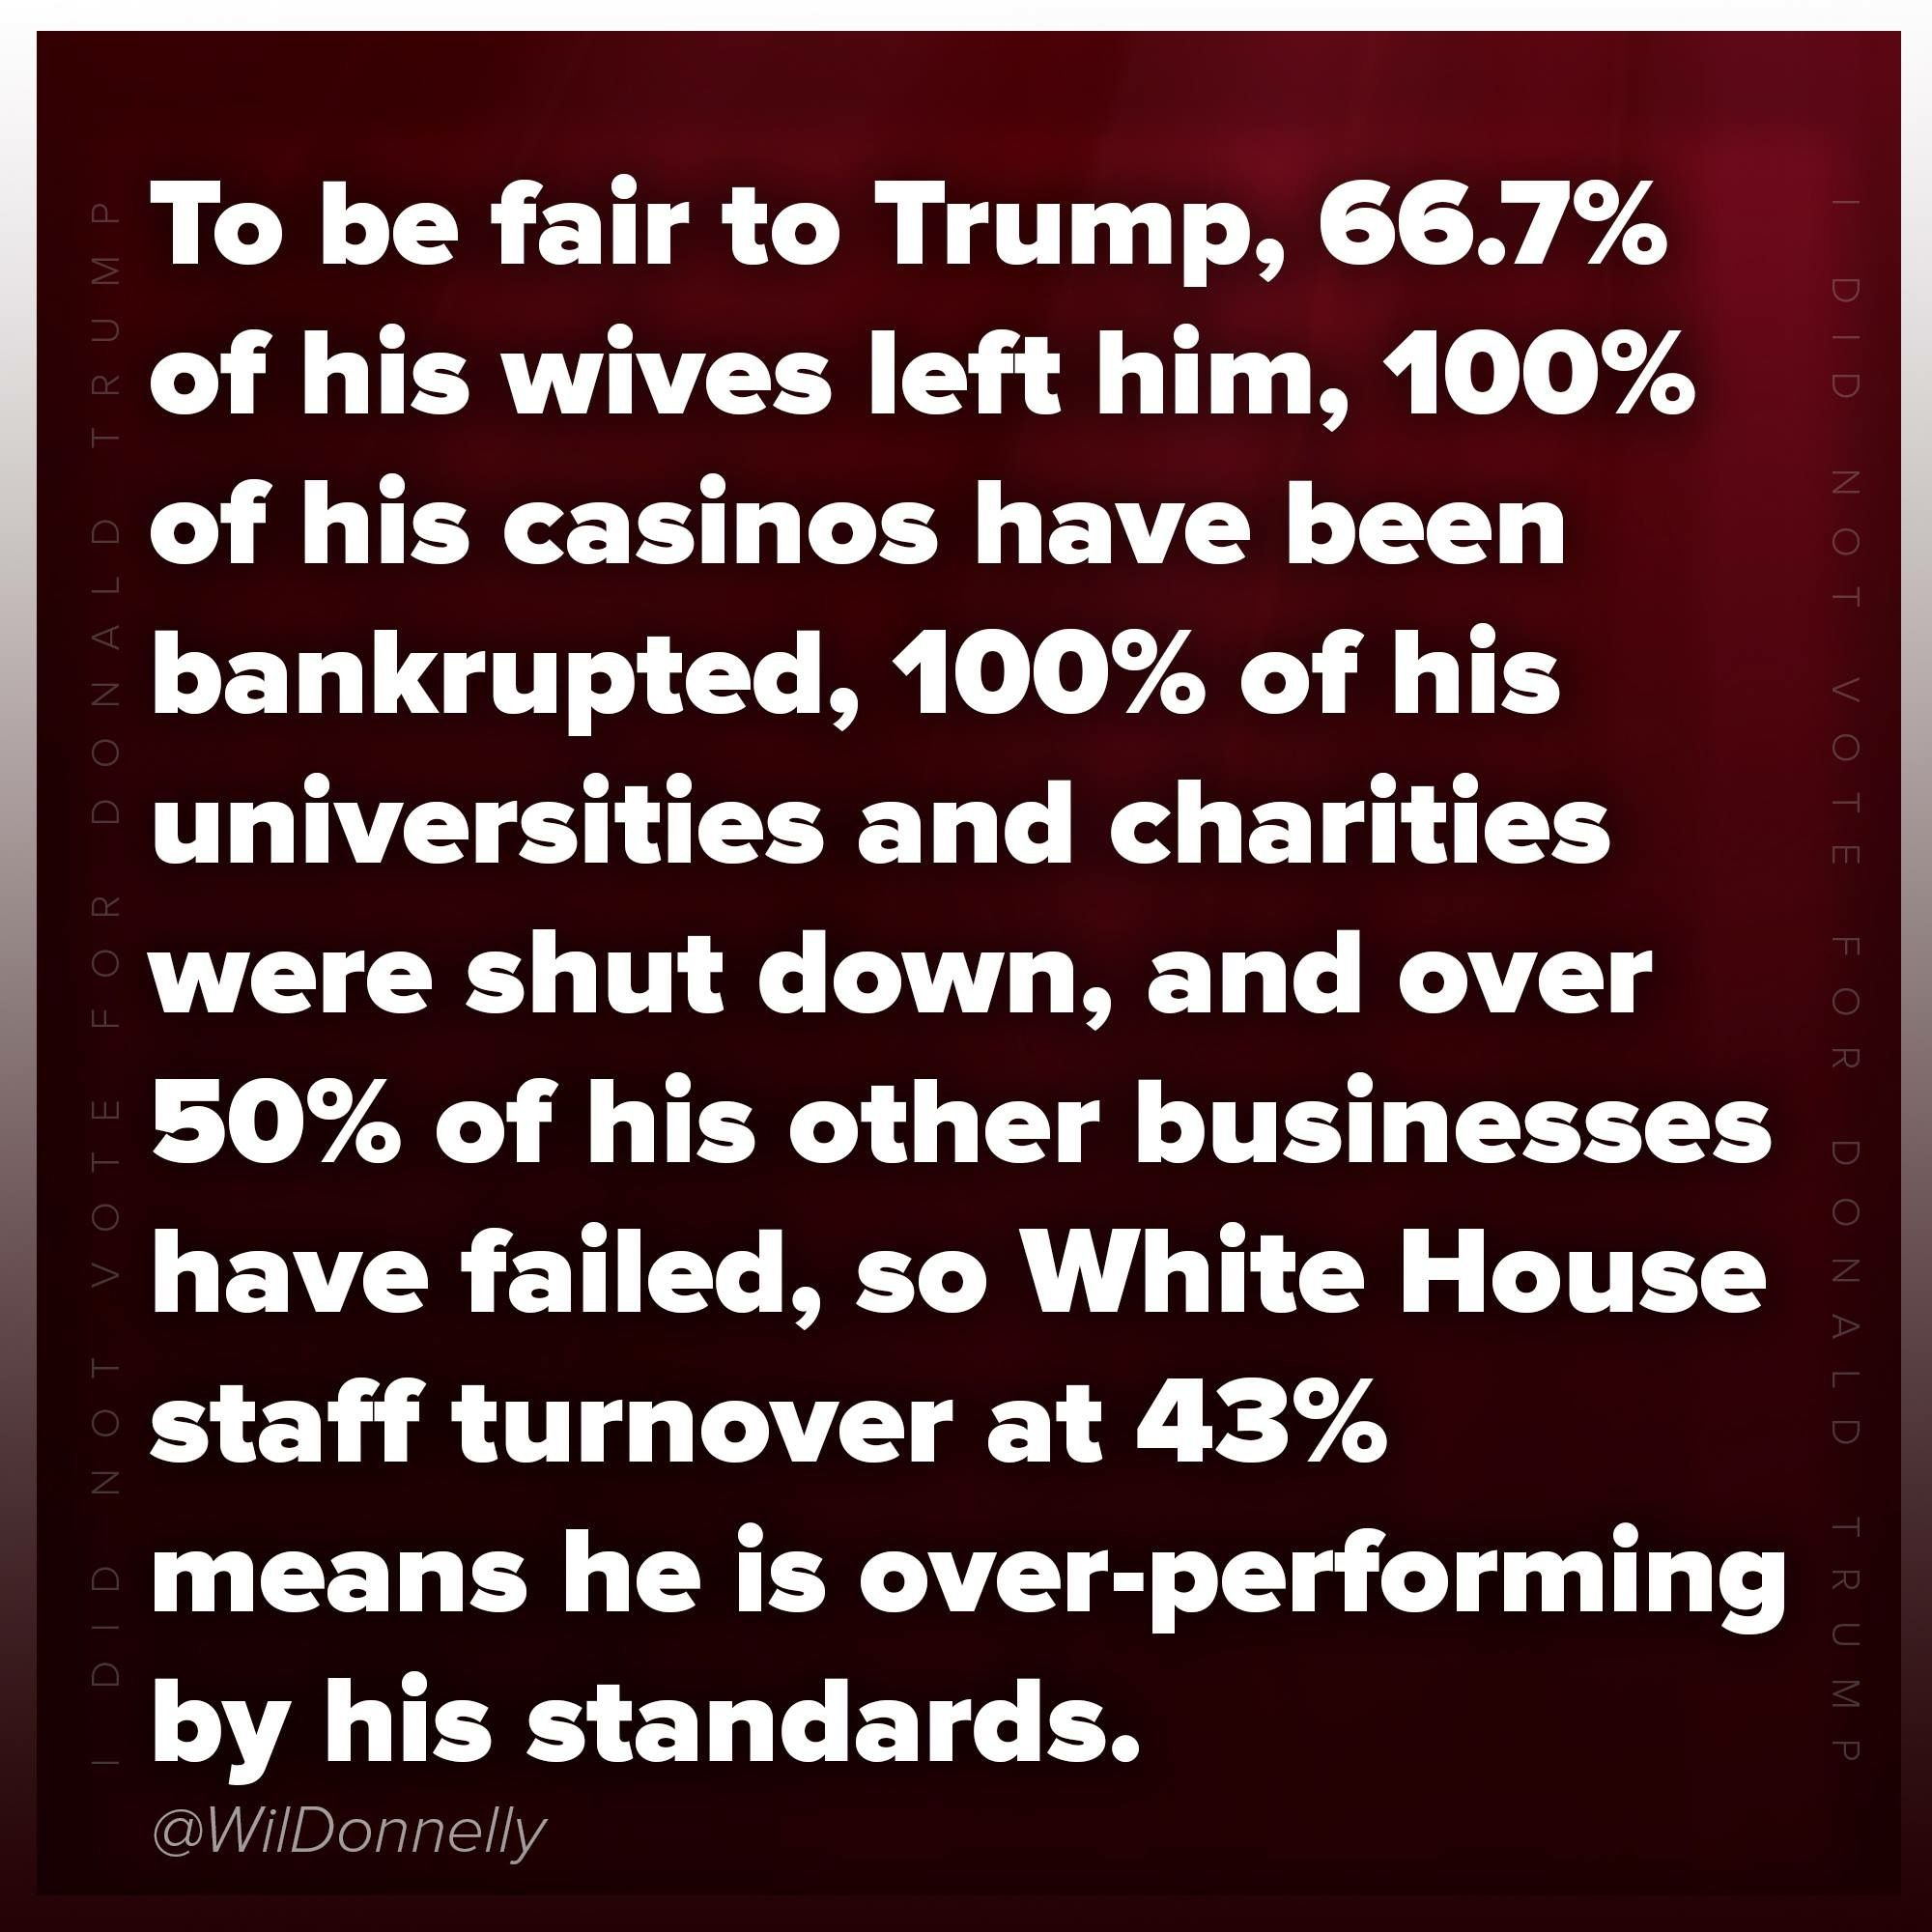 To Be Fair To Trump, 66.7% Of His Wives Left Him, 100% Of